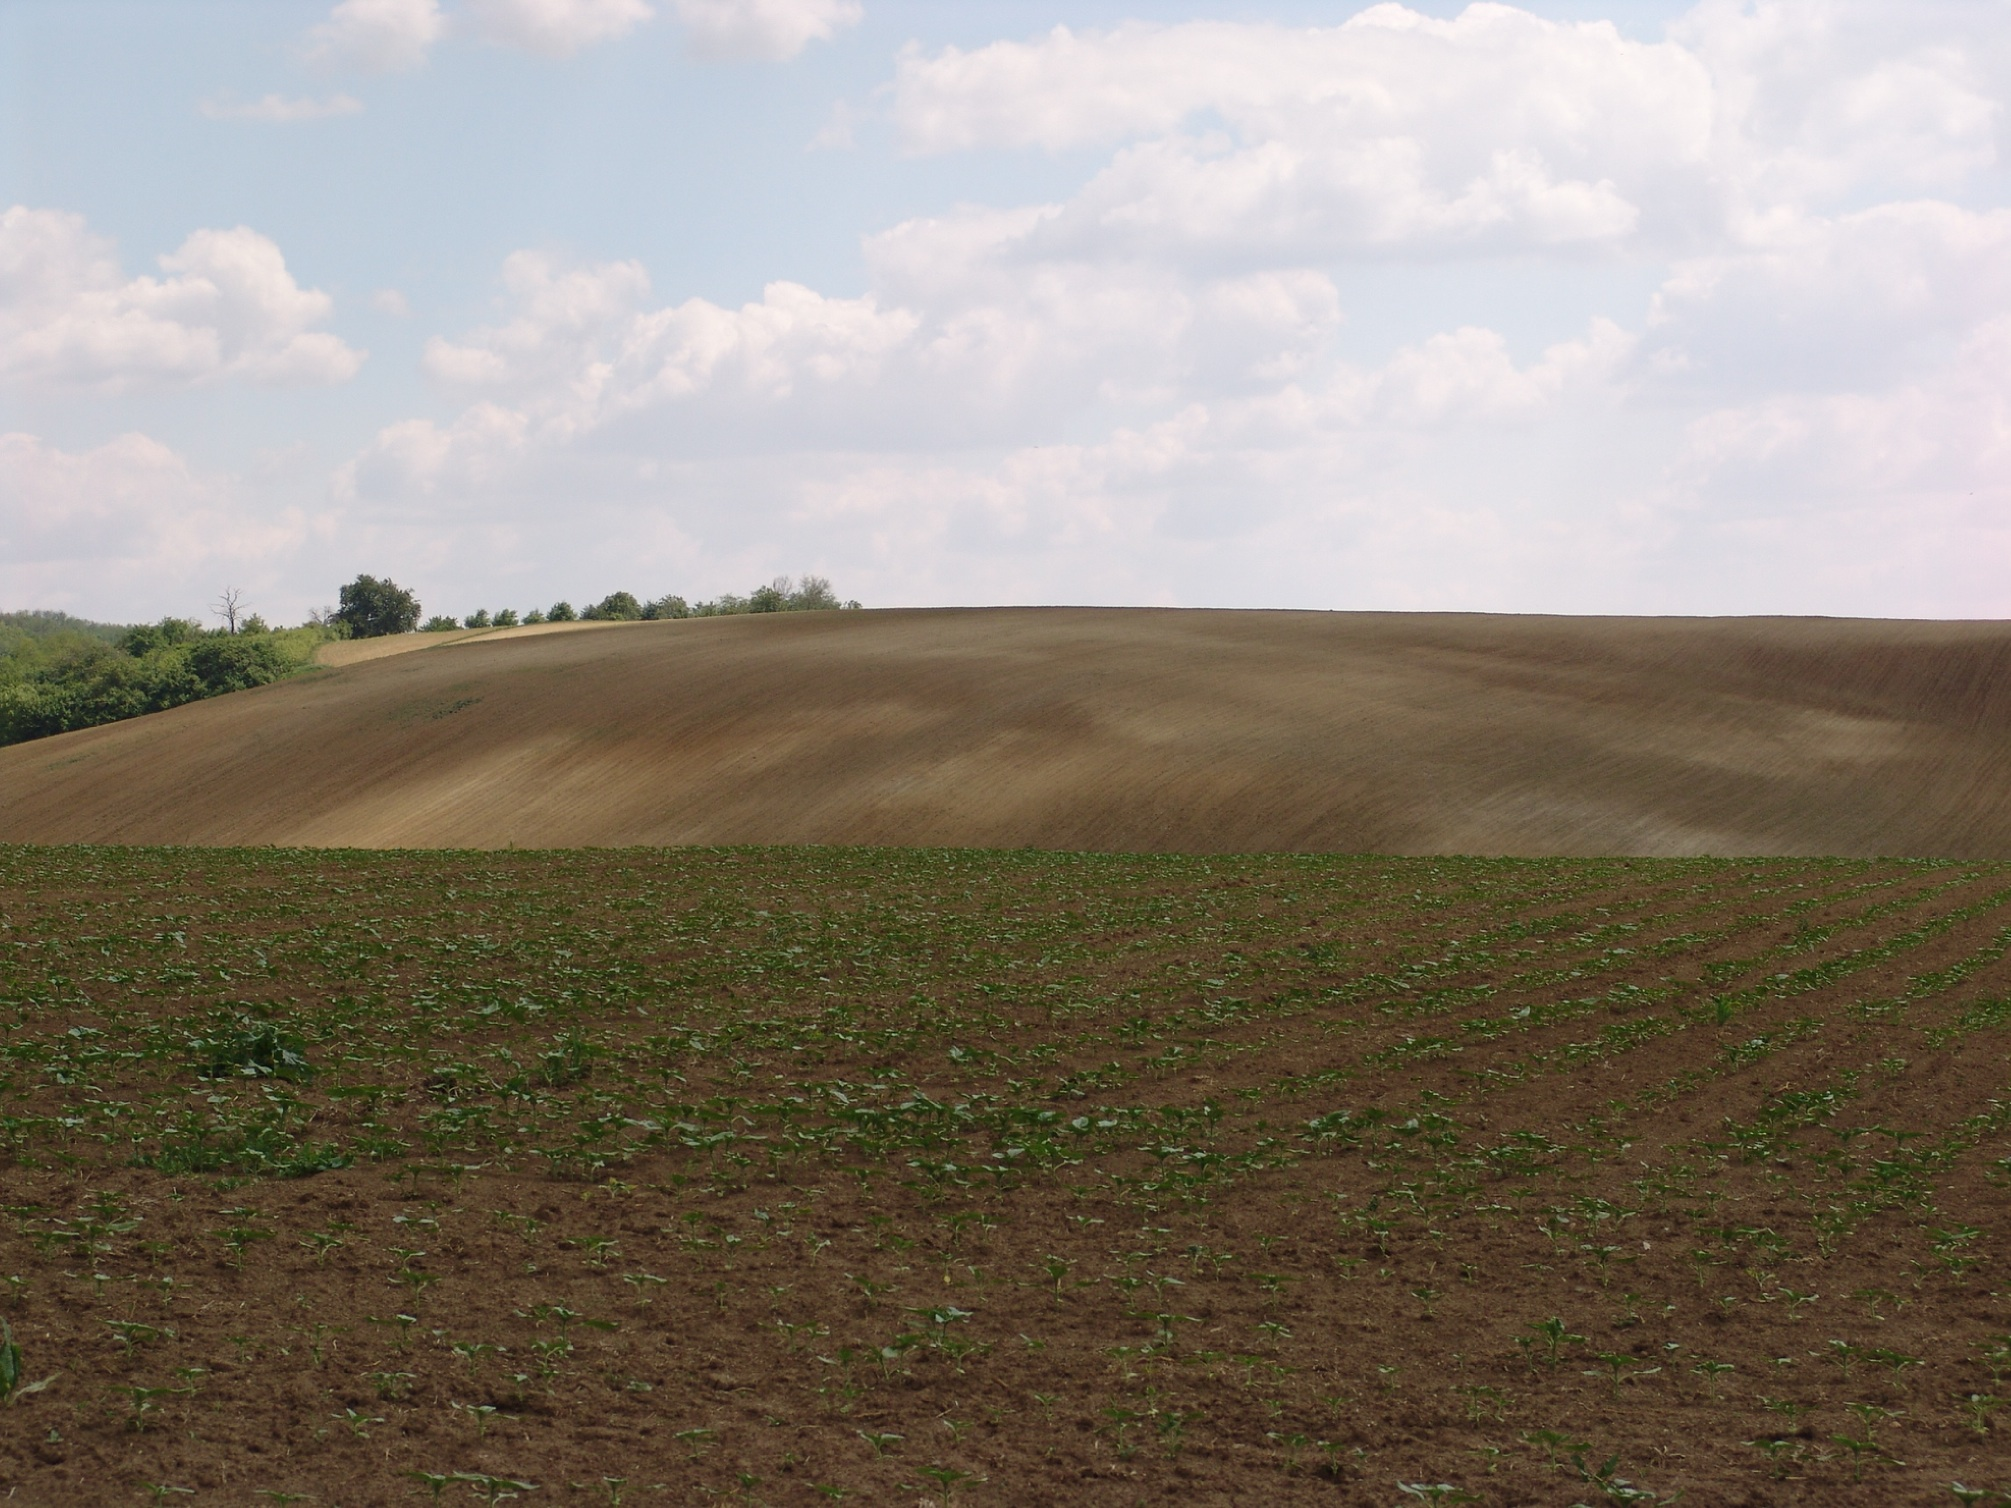 Soil degradation: bare surface caused by intensive cultivation at Martonfa, Southern Baranya Hills. photo by Gábor Varga